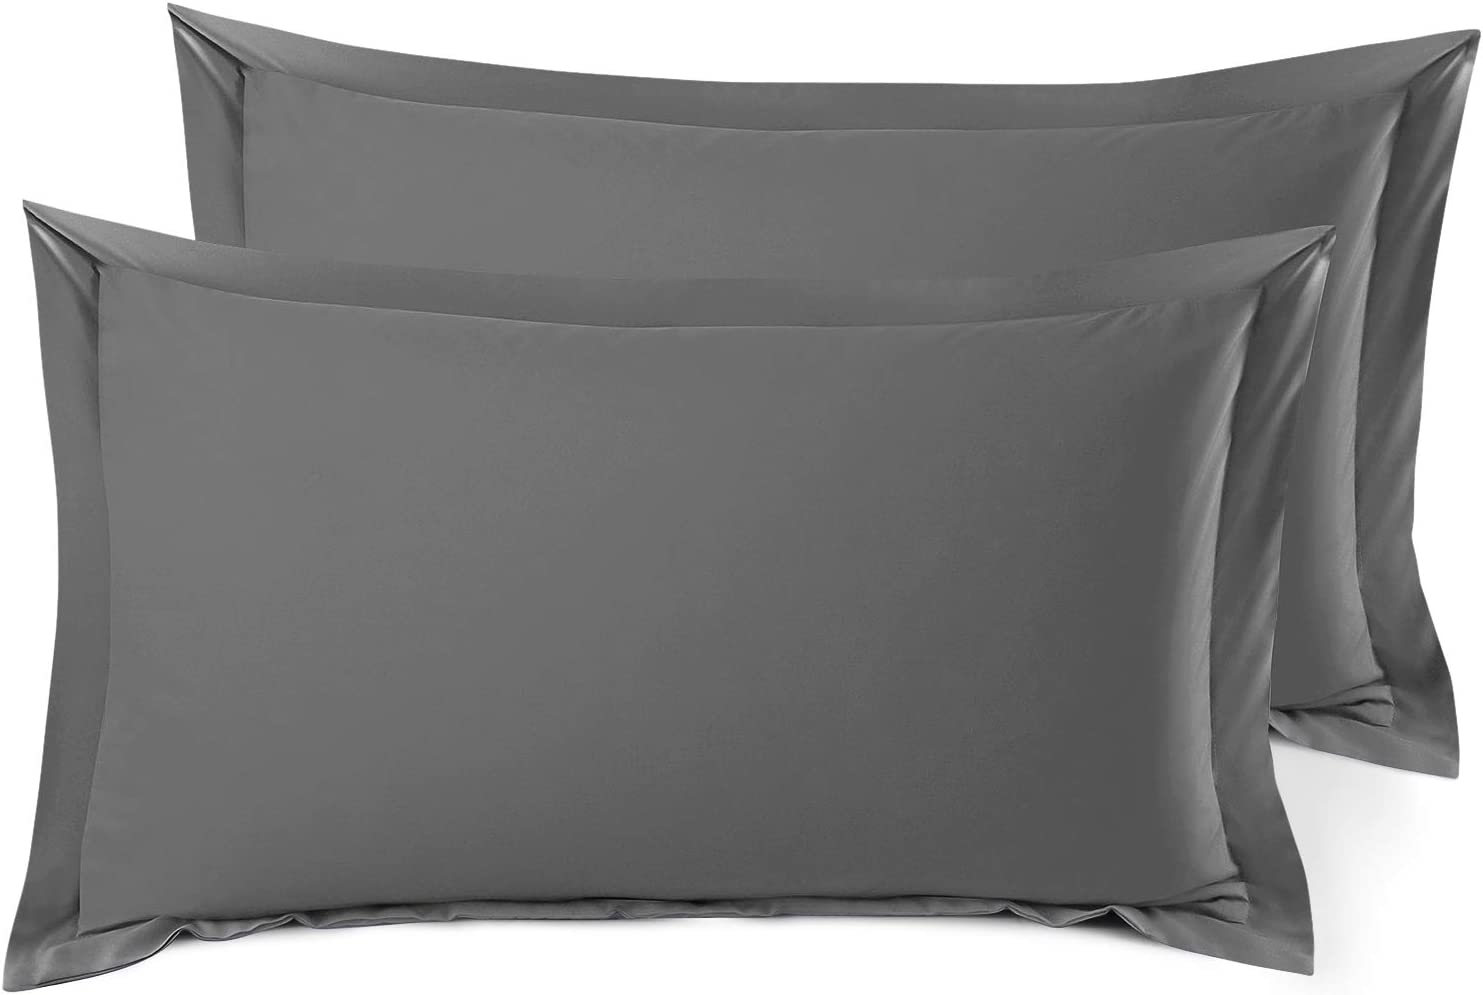 Nestl Bedding Soft Pillow Shams Set of 2 - Double Brushed Microfiber Hypoallergenic Pillow Covers - Hotel Style Premium Bed Pillow Cases, King - Gray